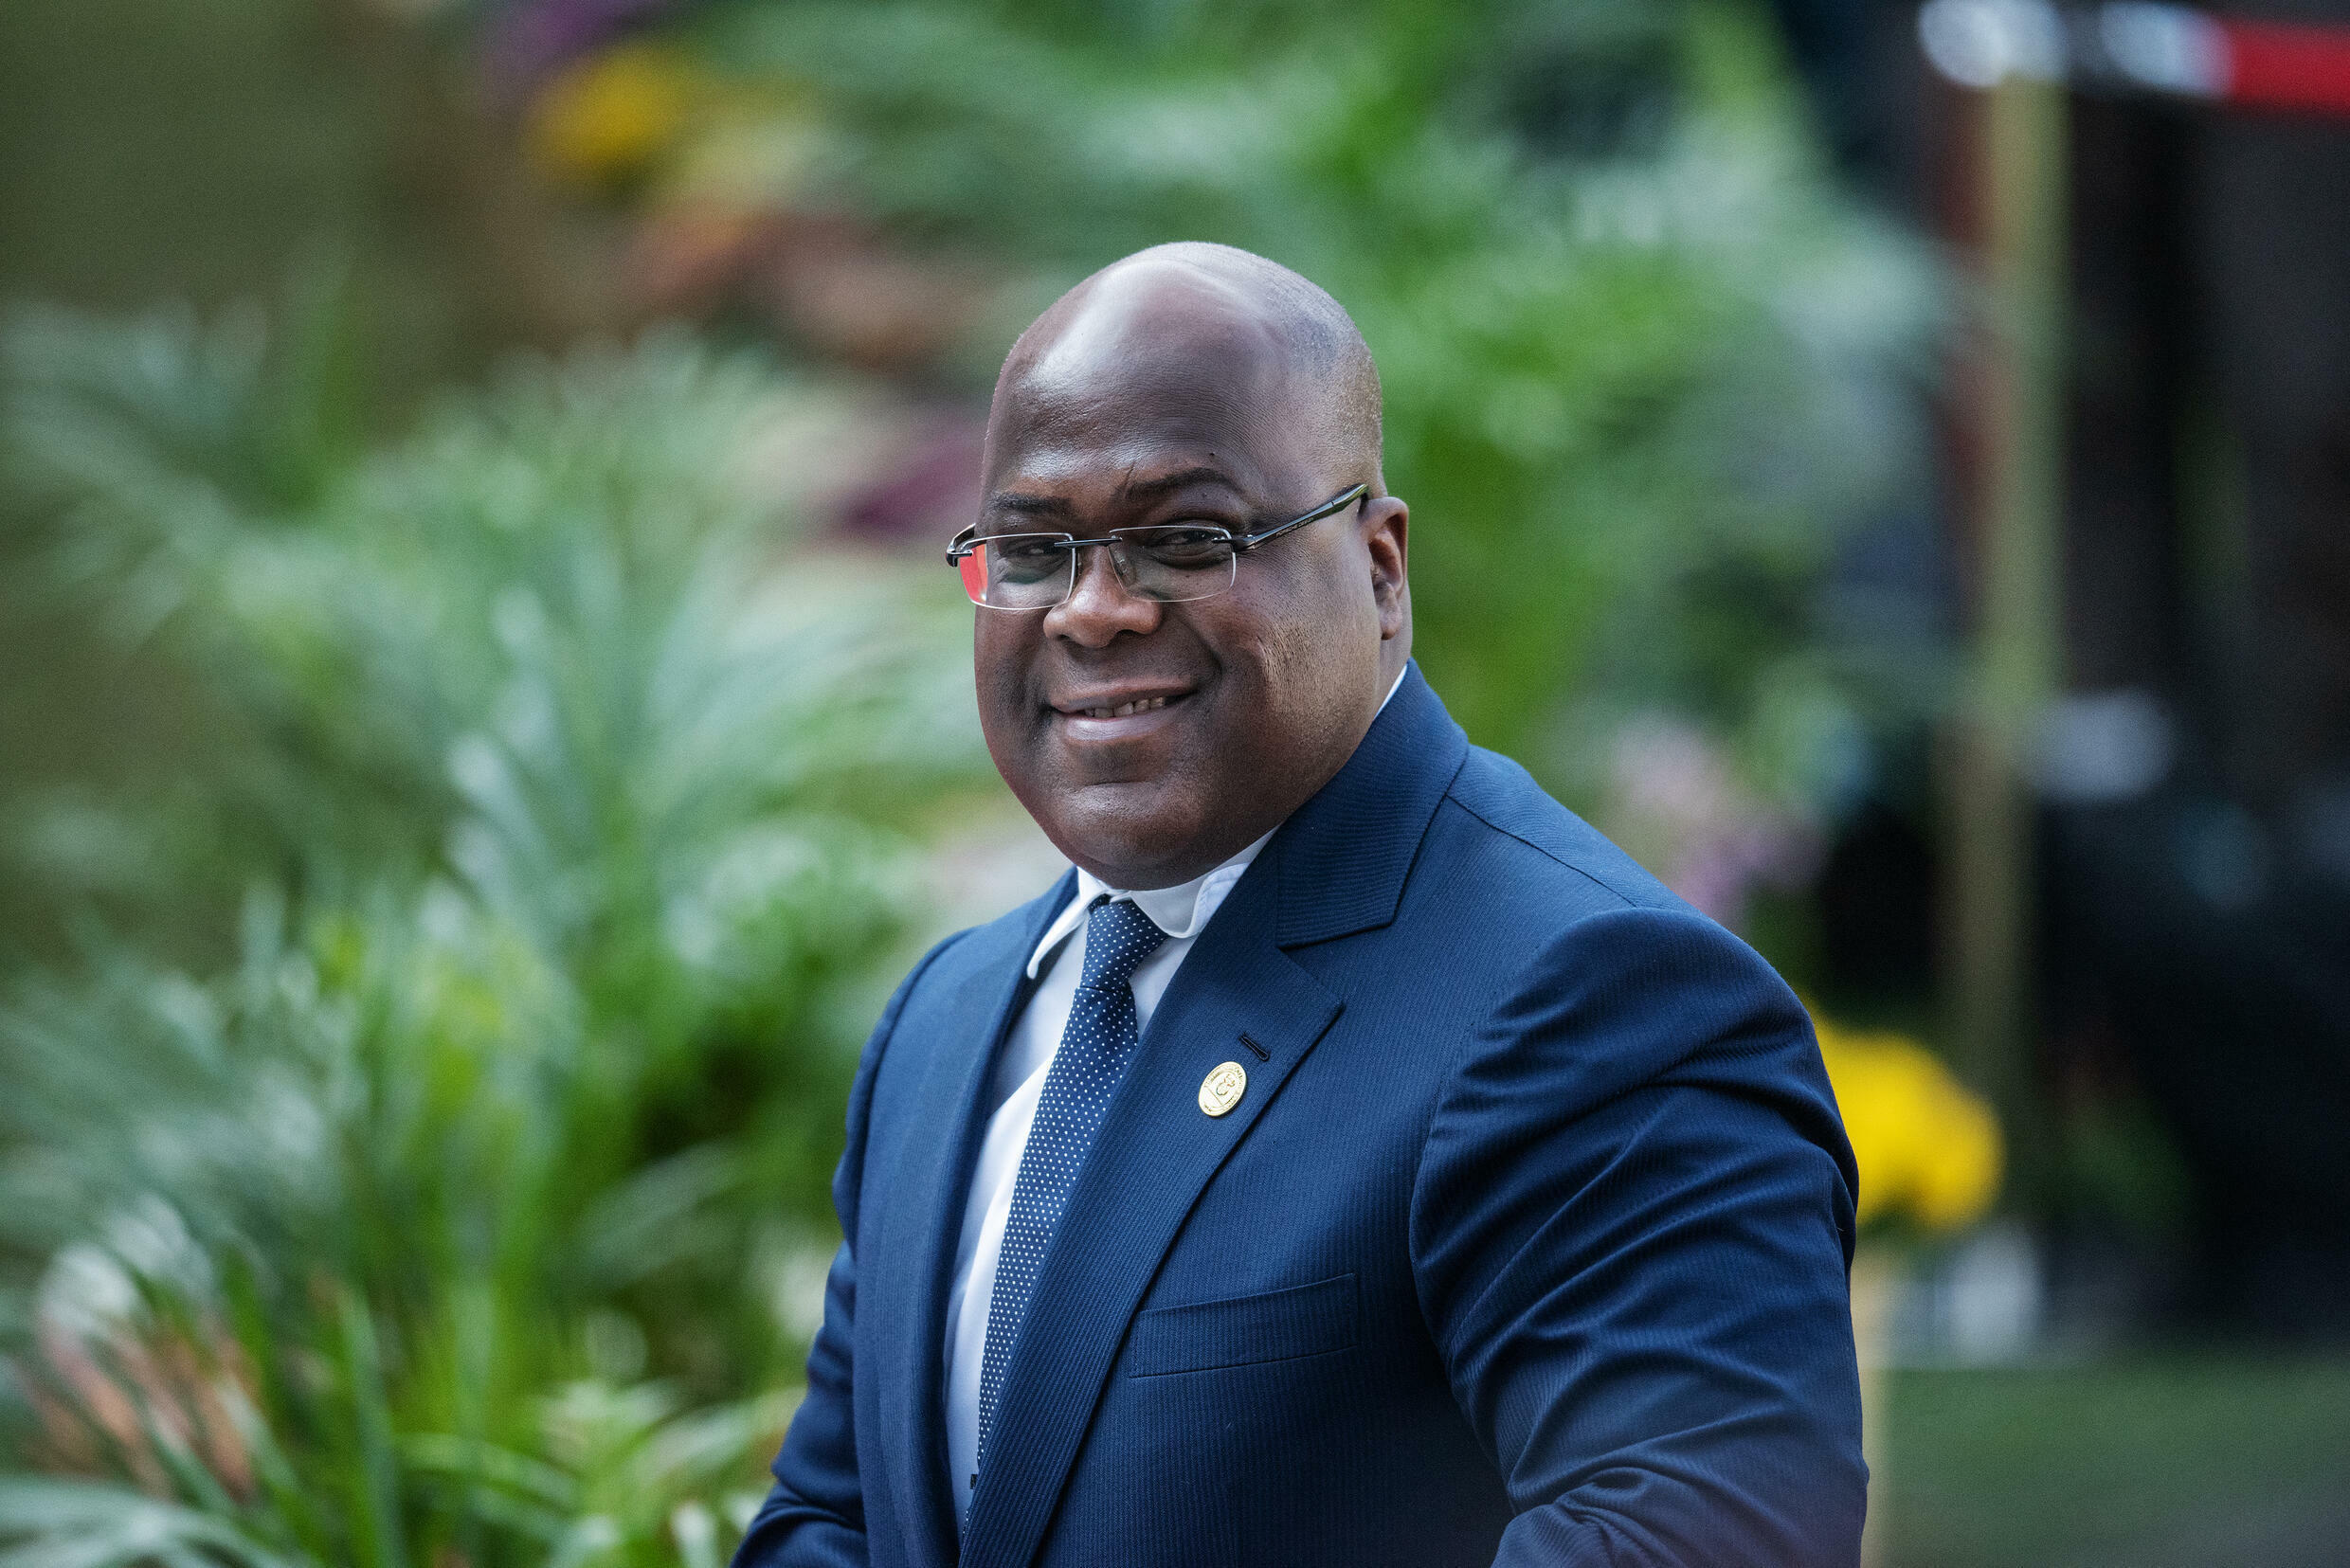 President Felix Tshisekedi, who came to power in 2019, has launched a push to widen use of the Congolese franc